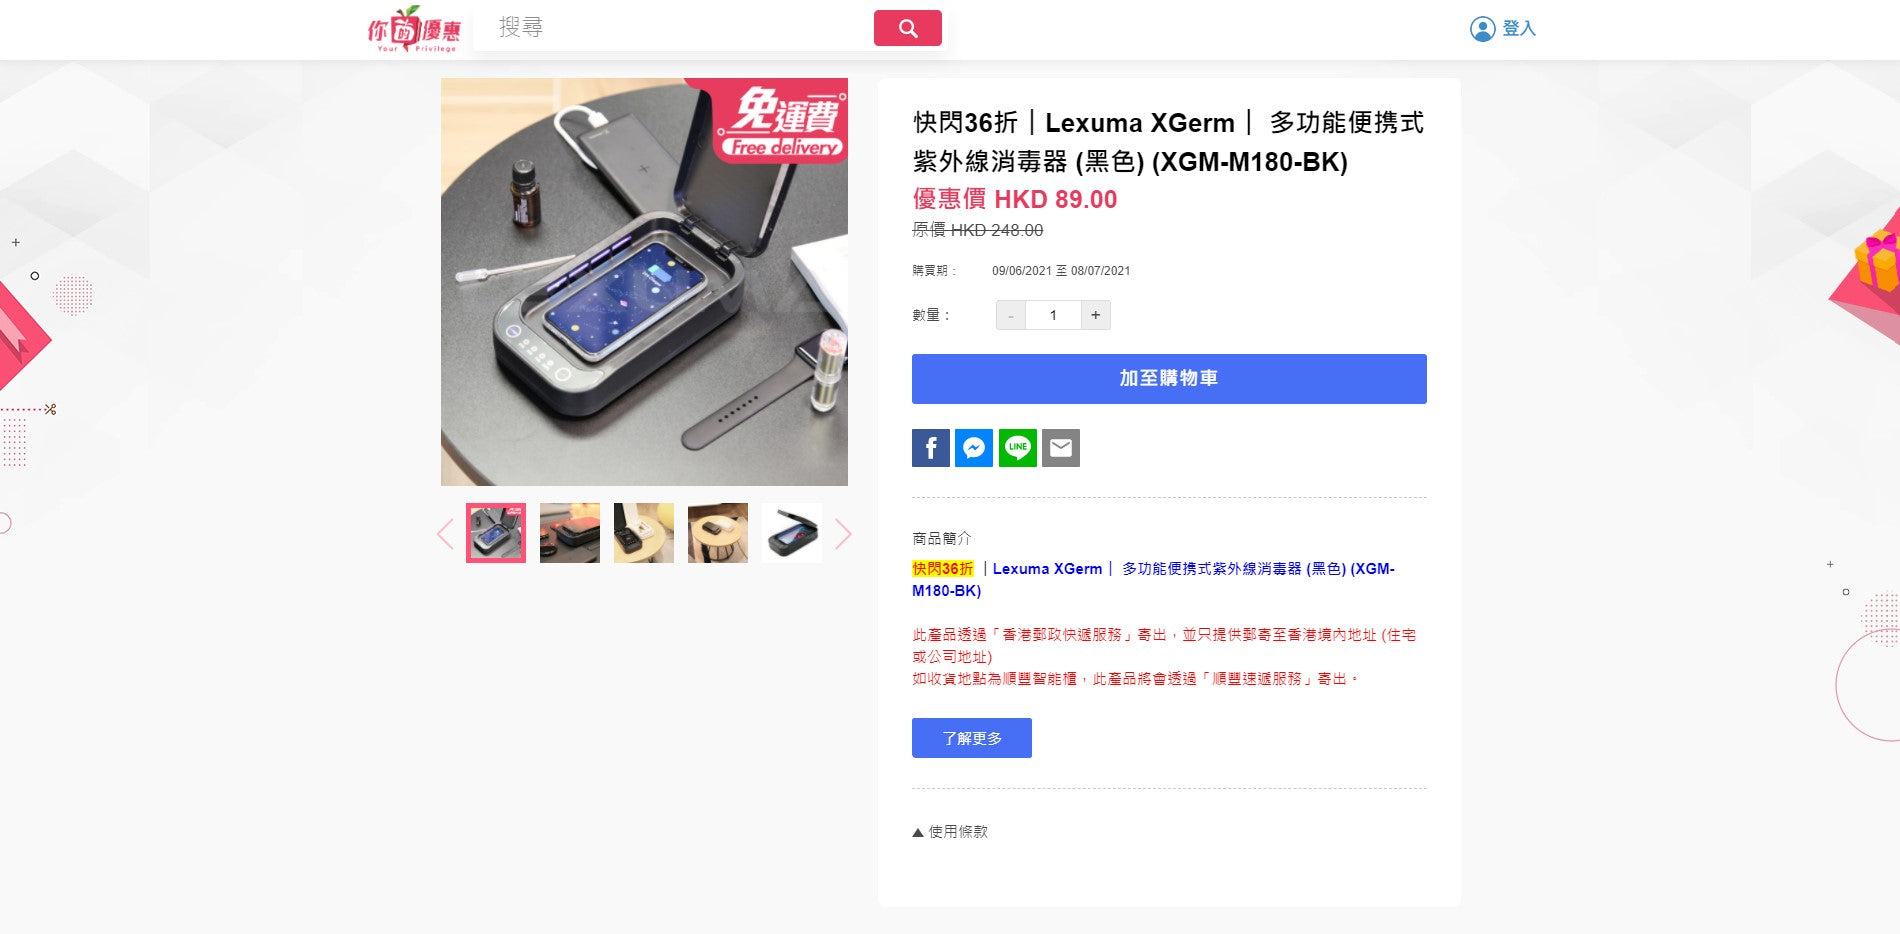 lexuma-news-appledaily-promotional-discount-happy-father-s-day-special-offer-xgerm-black